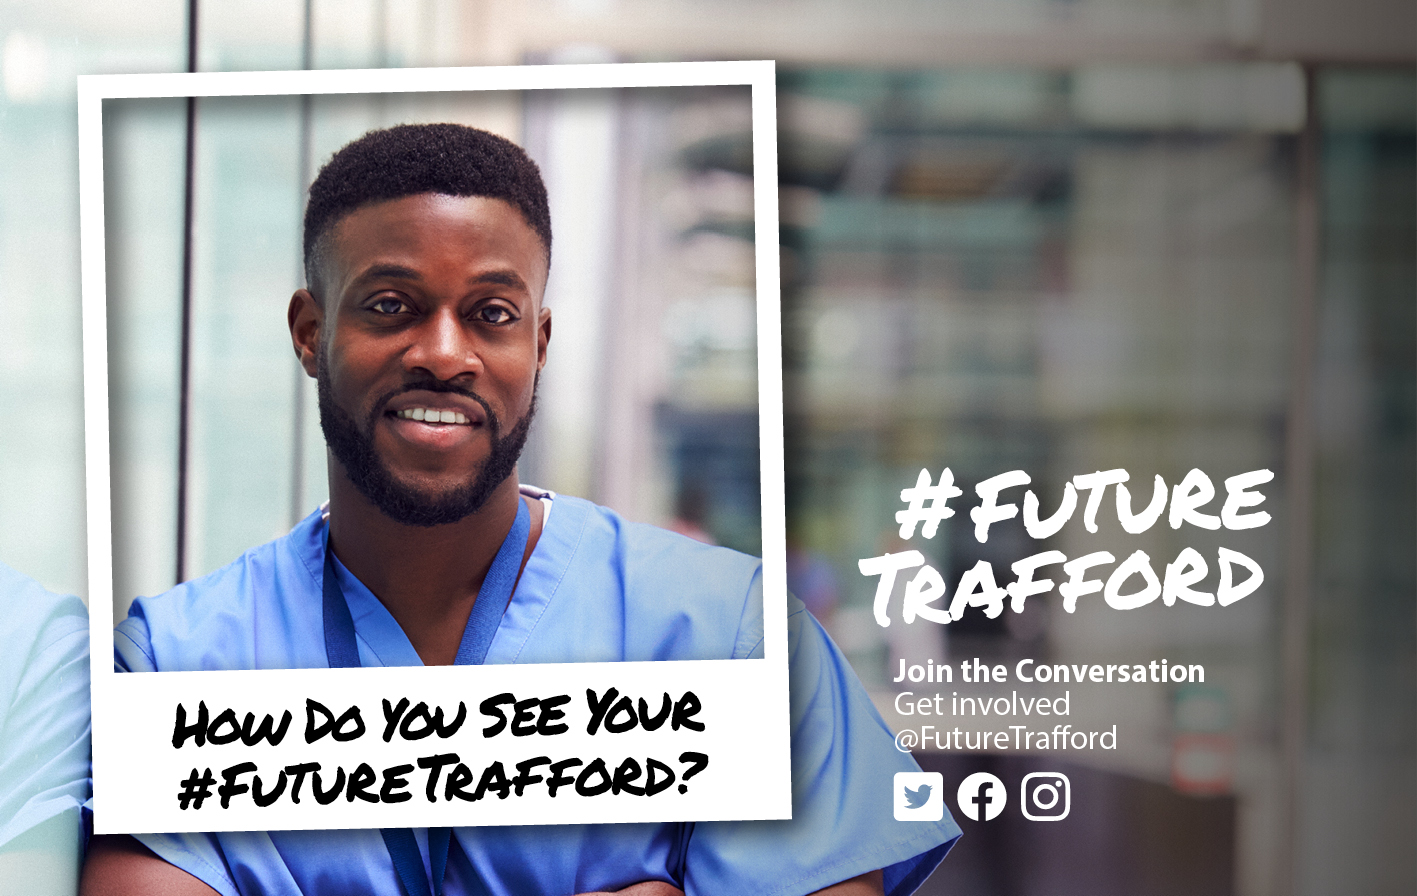 FutureTrafford join the conversation image of a young guy wearing a medical uniform